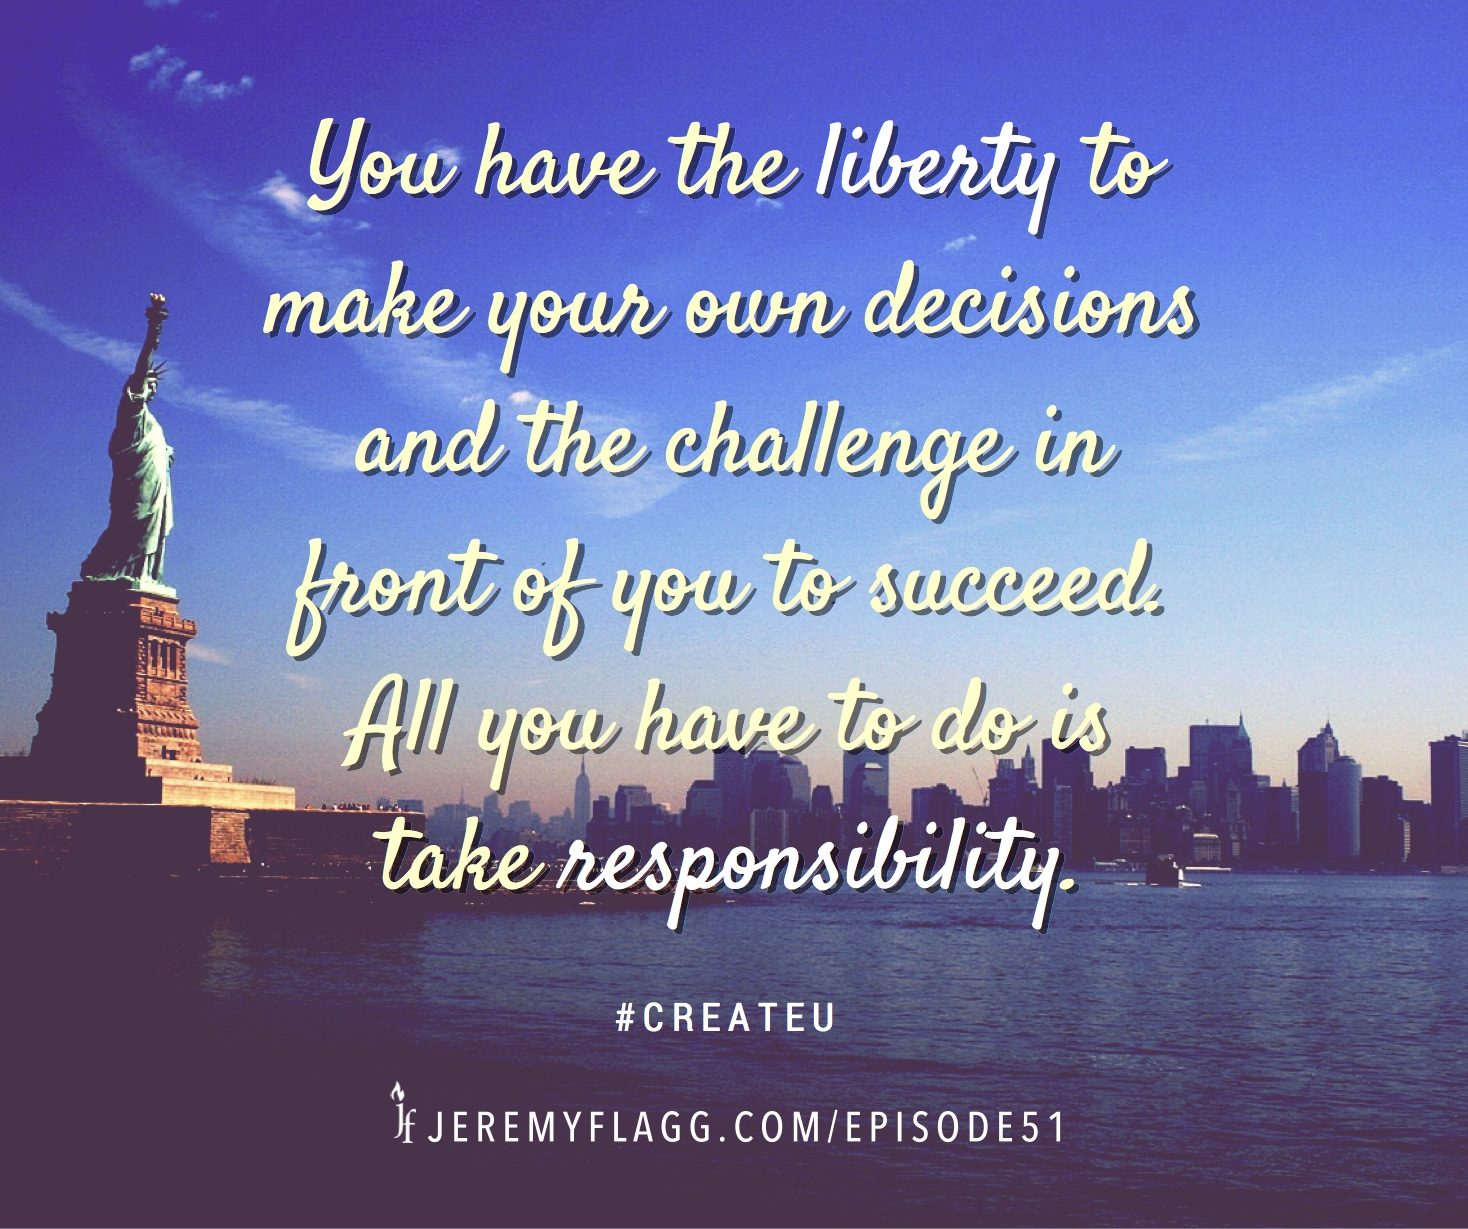 Liberty-succeed-responsibility-quote-Jeremy-Flagg-FB